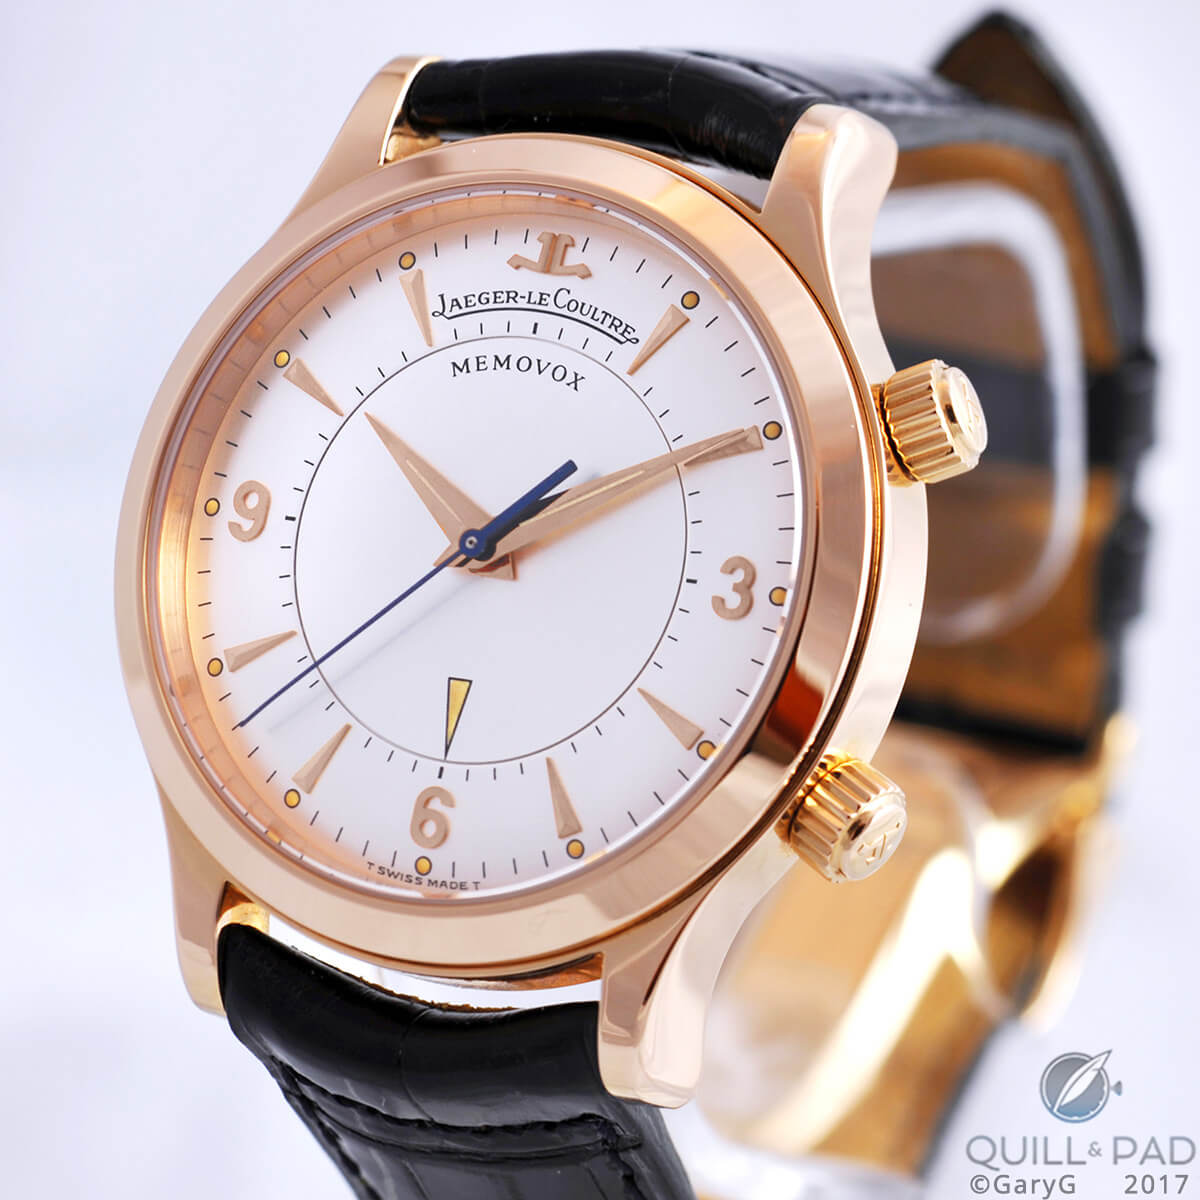 What was I thinking? Now-departed Jaeger-LeCoultre Memovox in pink gold